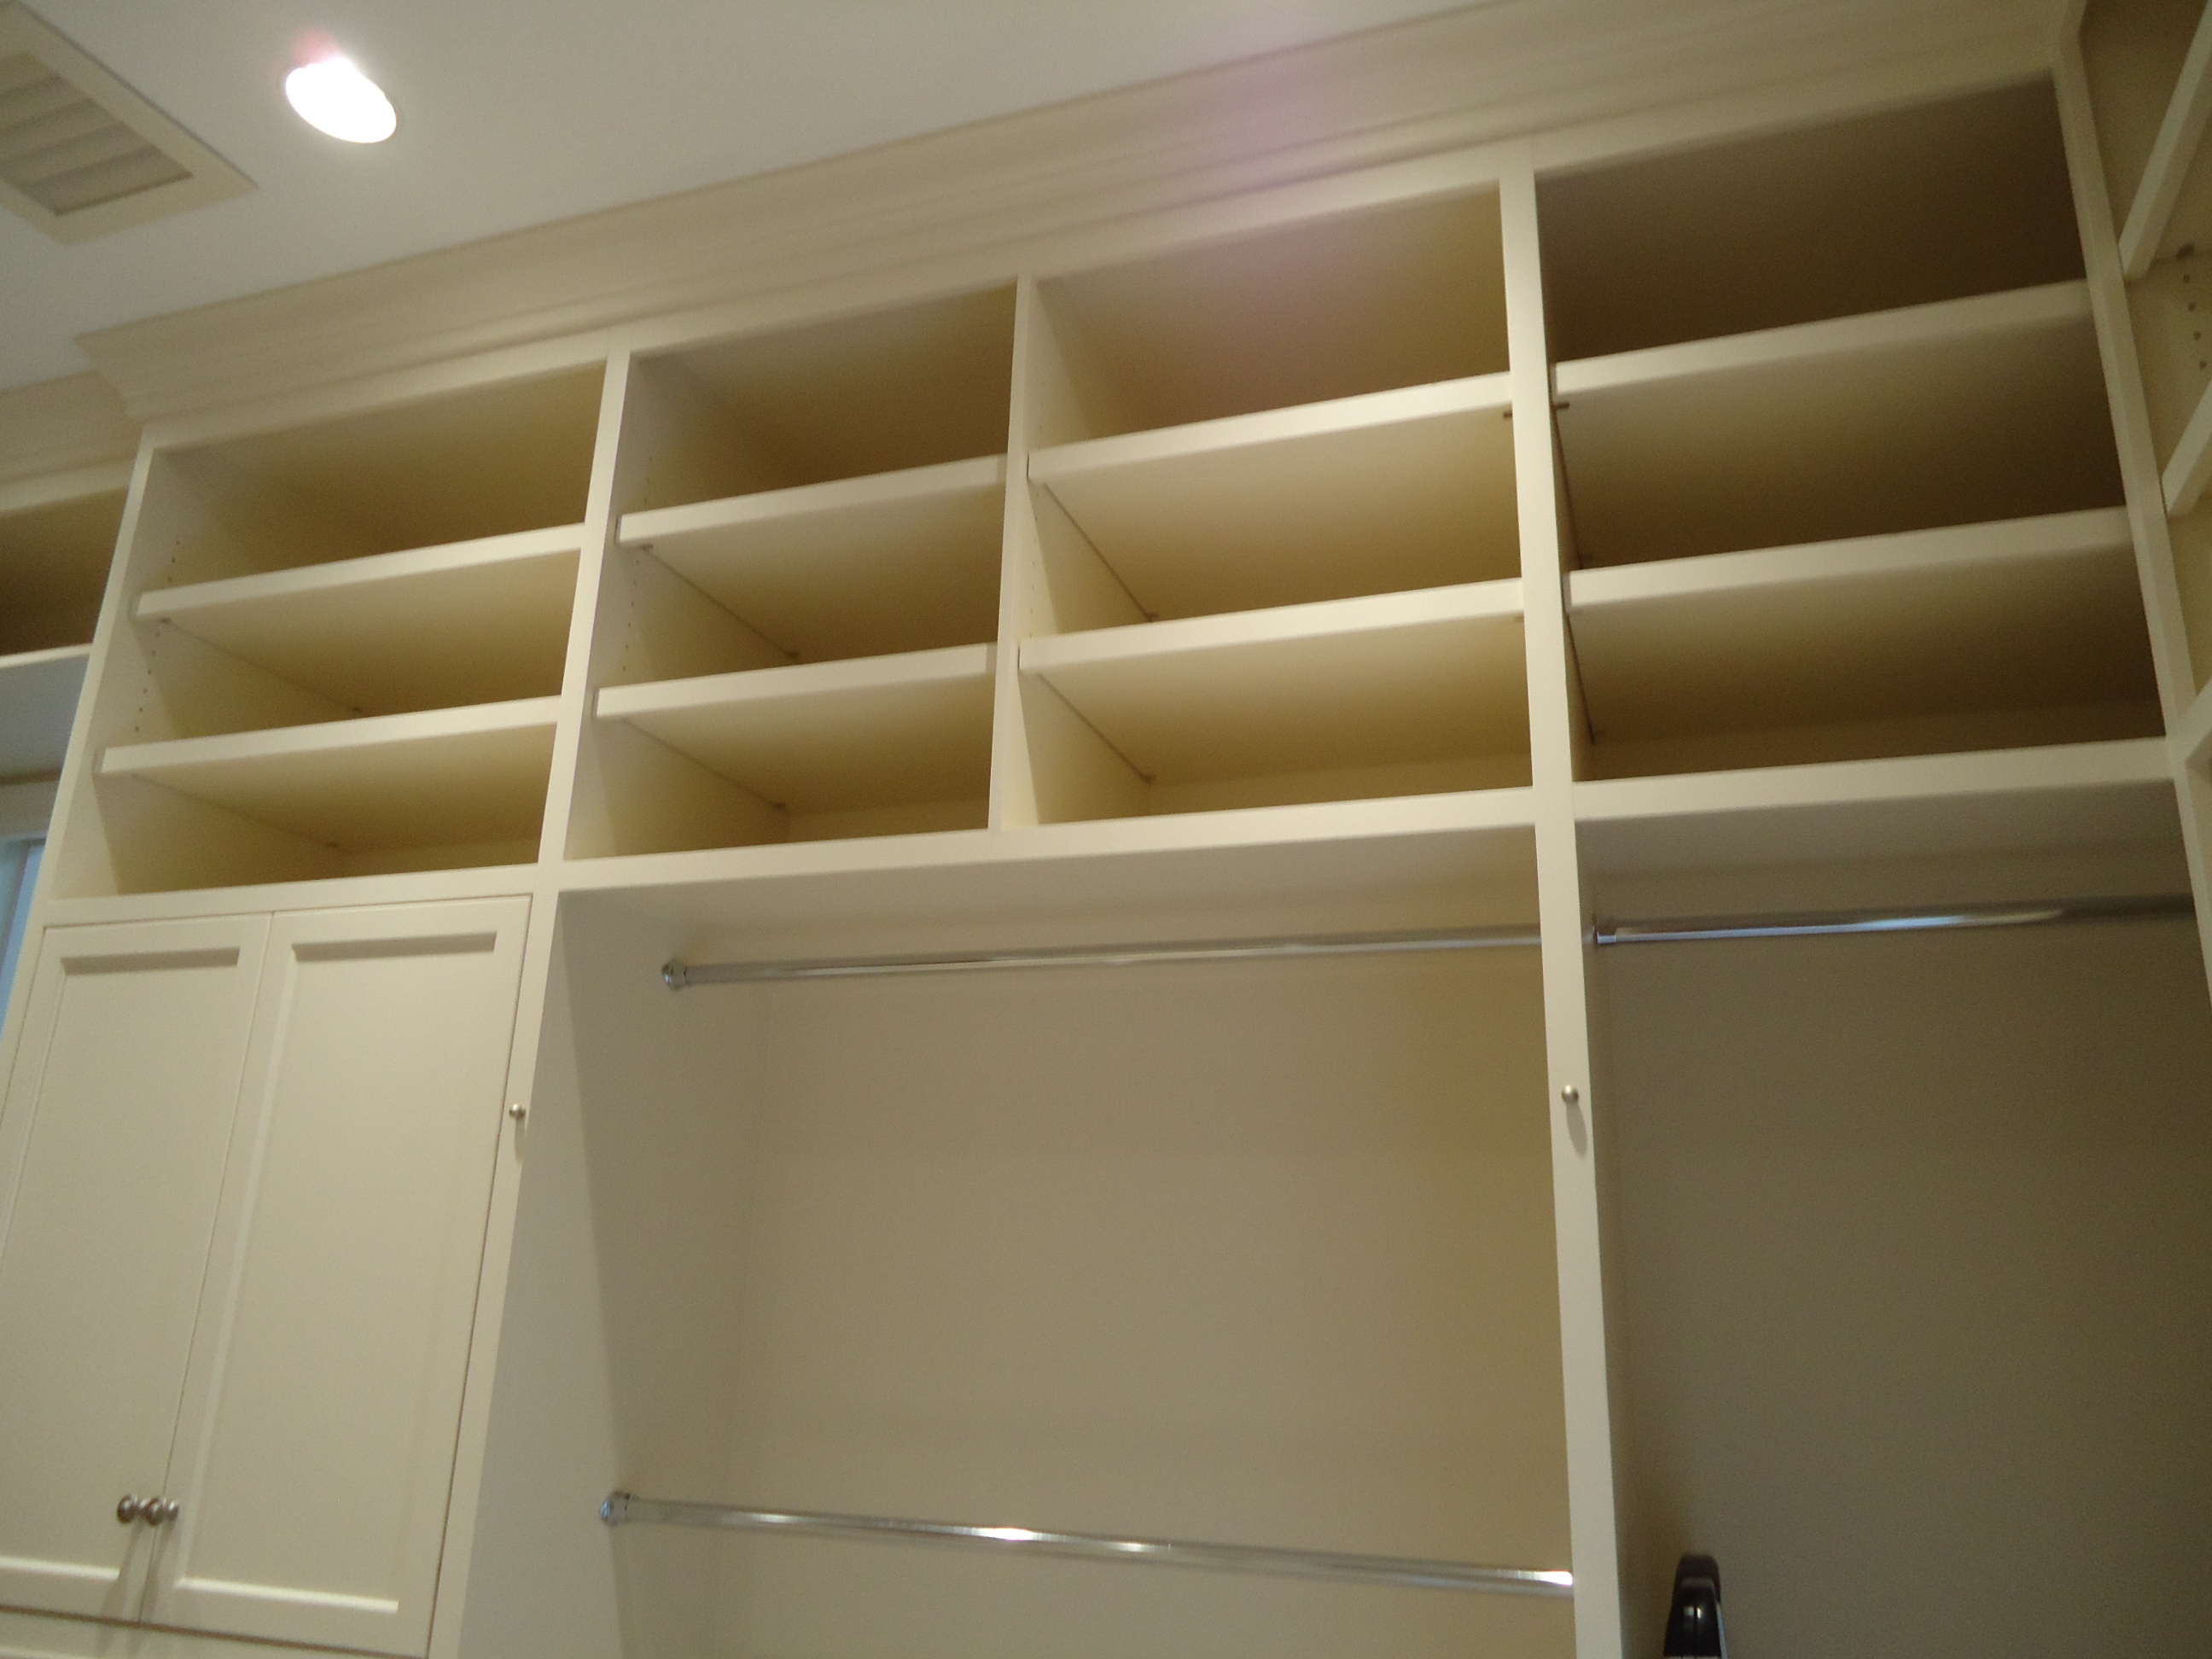 closet wardrobes pictures find in produce will a few you our examples what here closets please made gallery just of built custom through as pin view we wardrobe